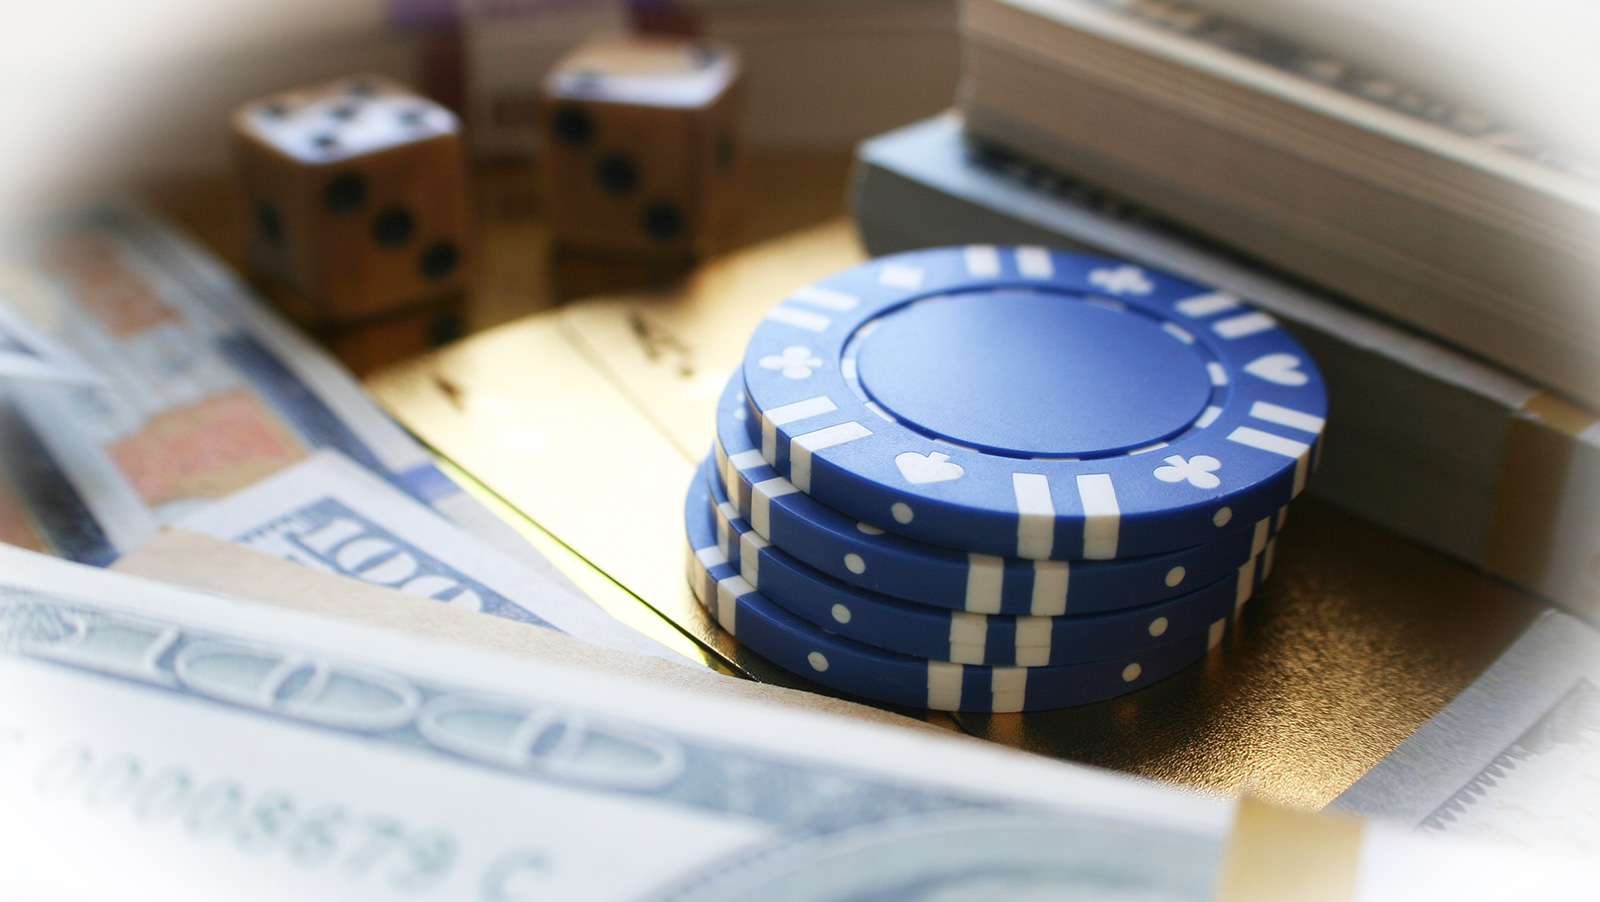 WPT to change ownership; poker operations to remain unaffected